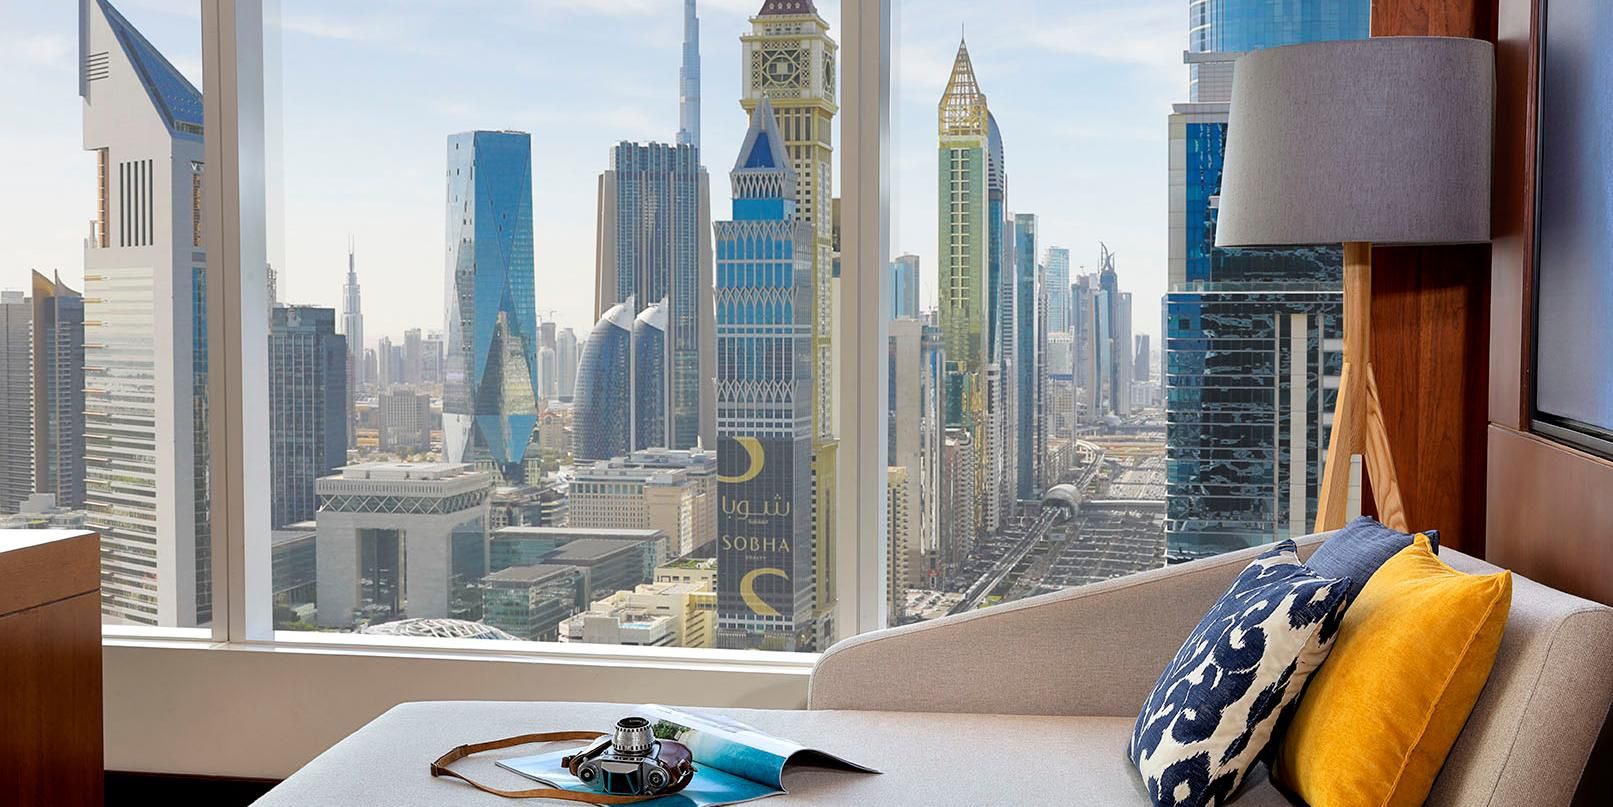 Deluxe Room with views of Sheikh Zayed Road, Dubai